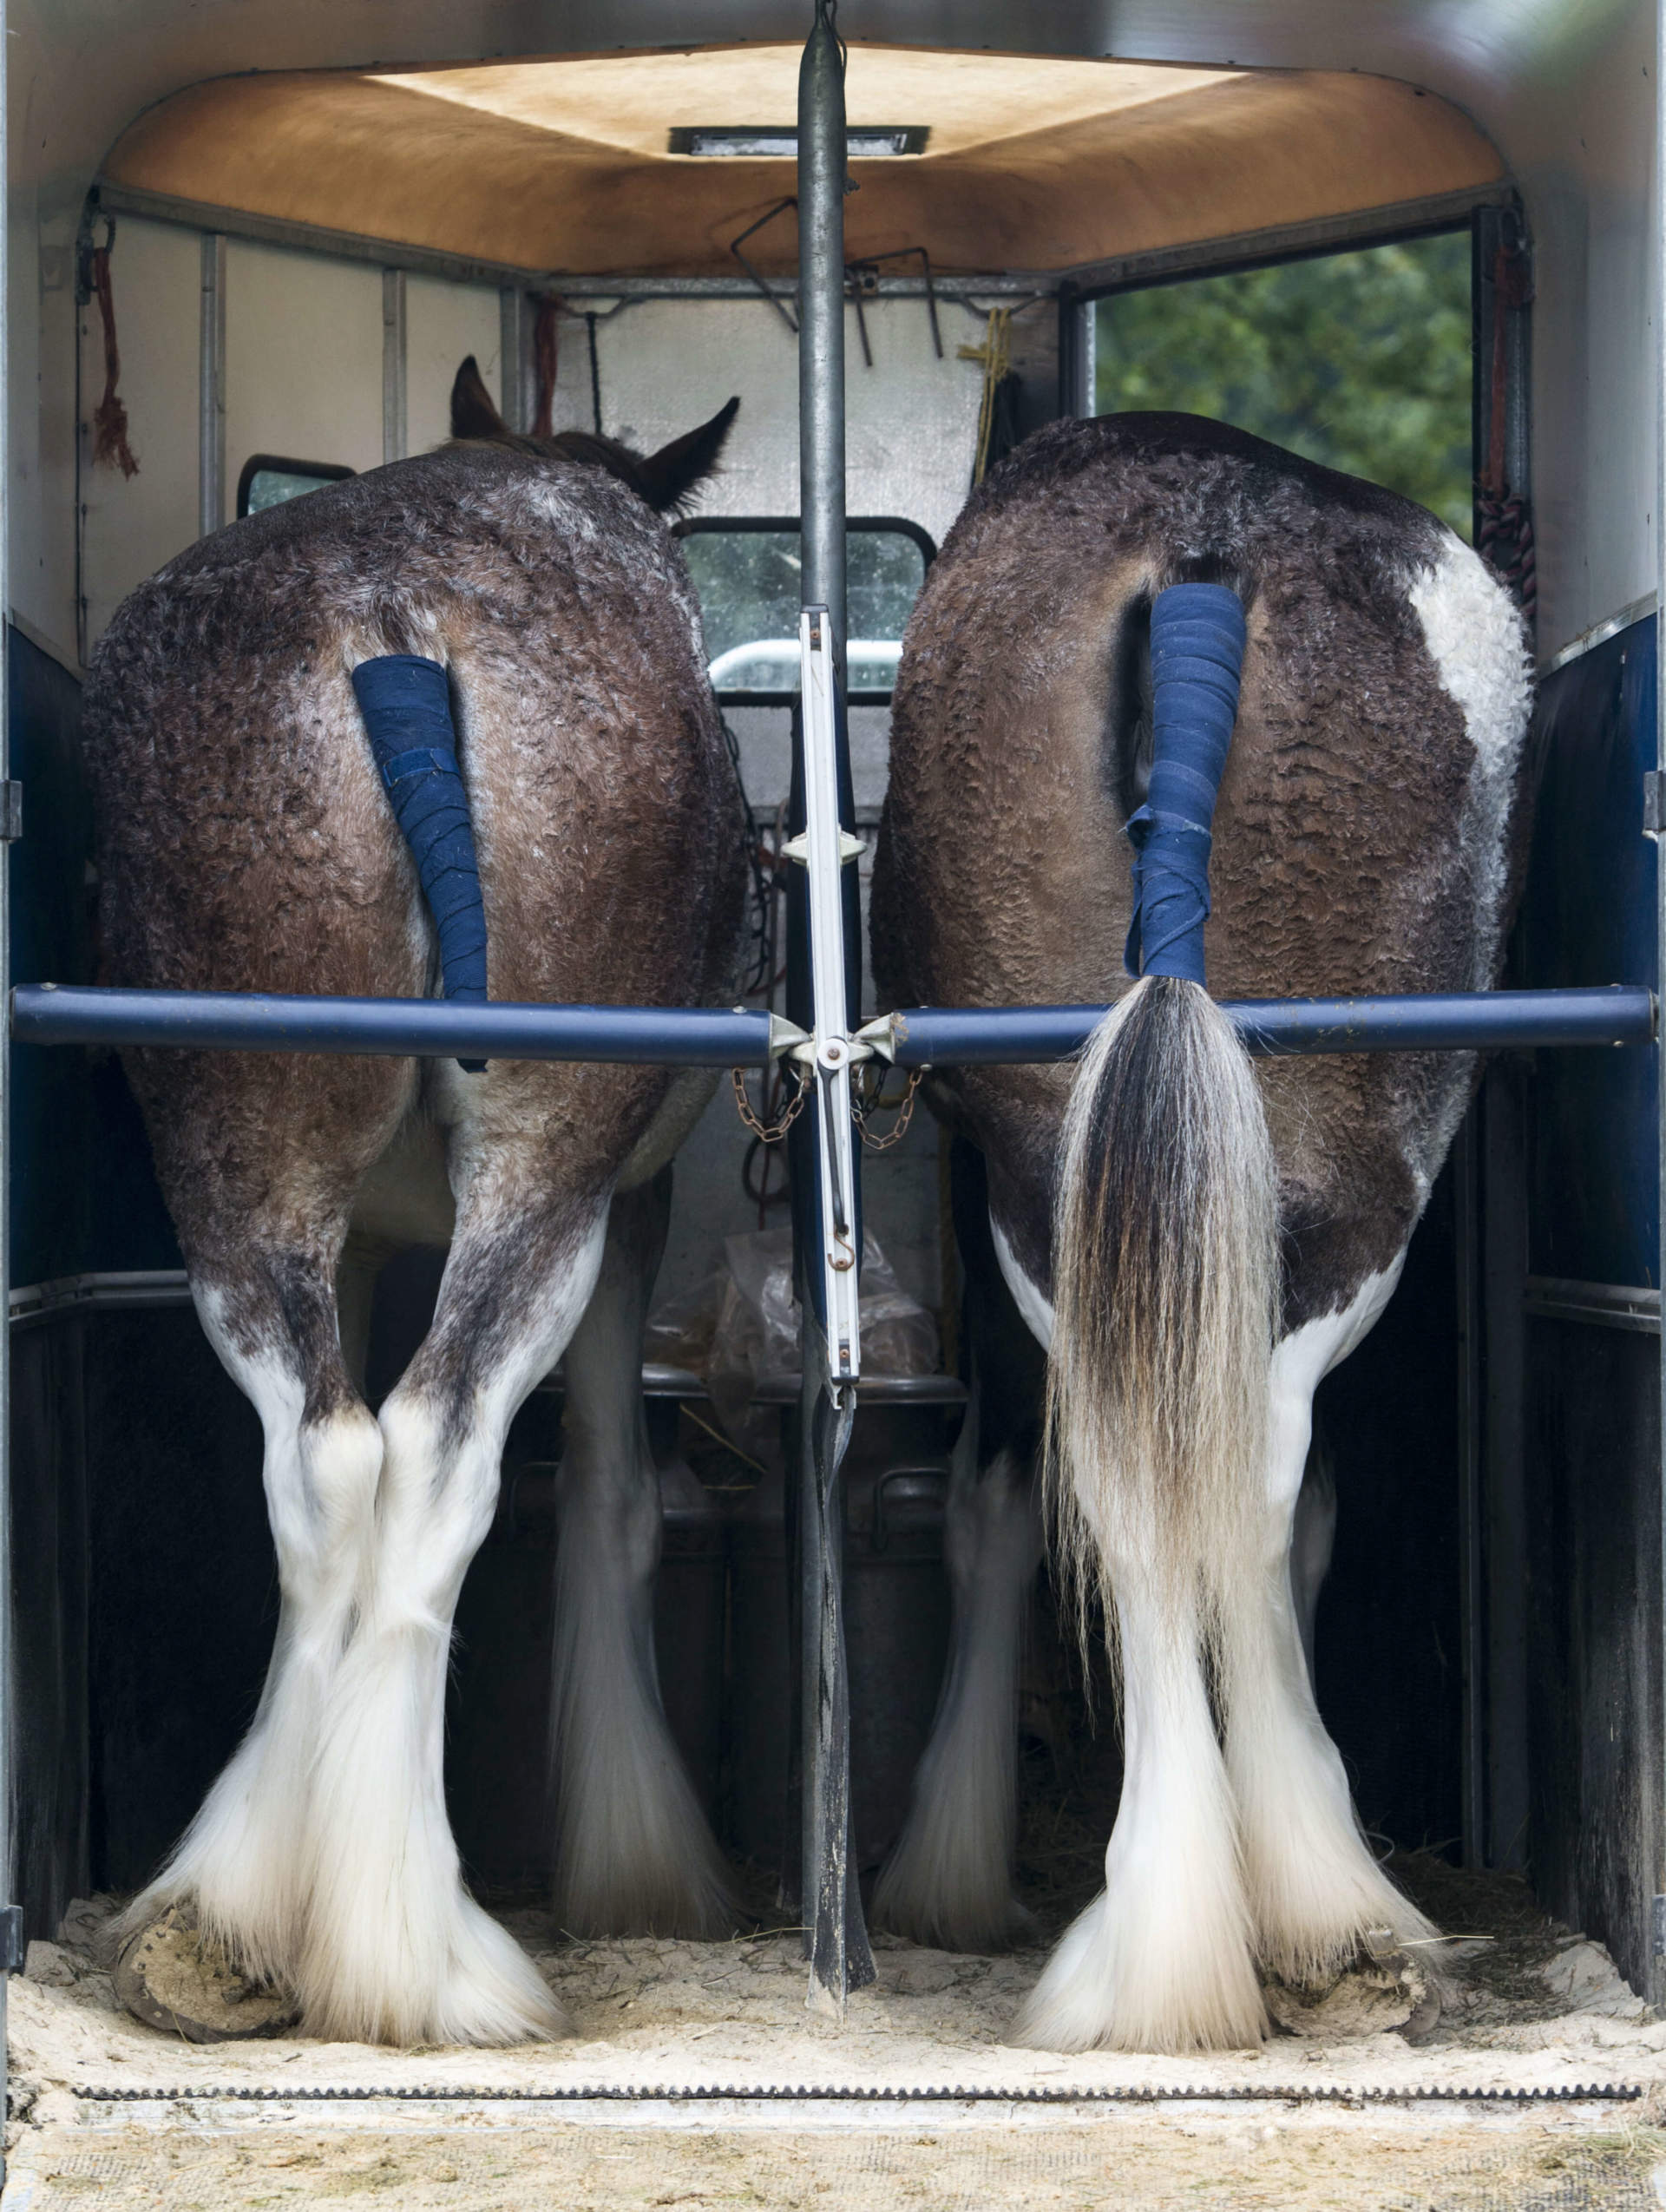 Two Horses in a Trailer